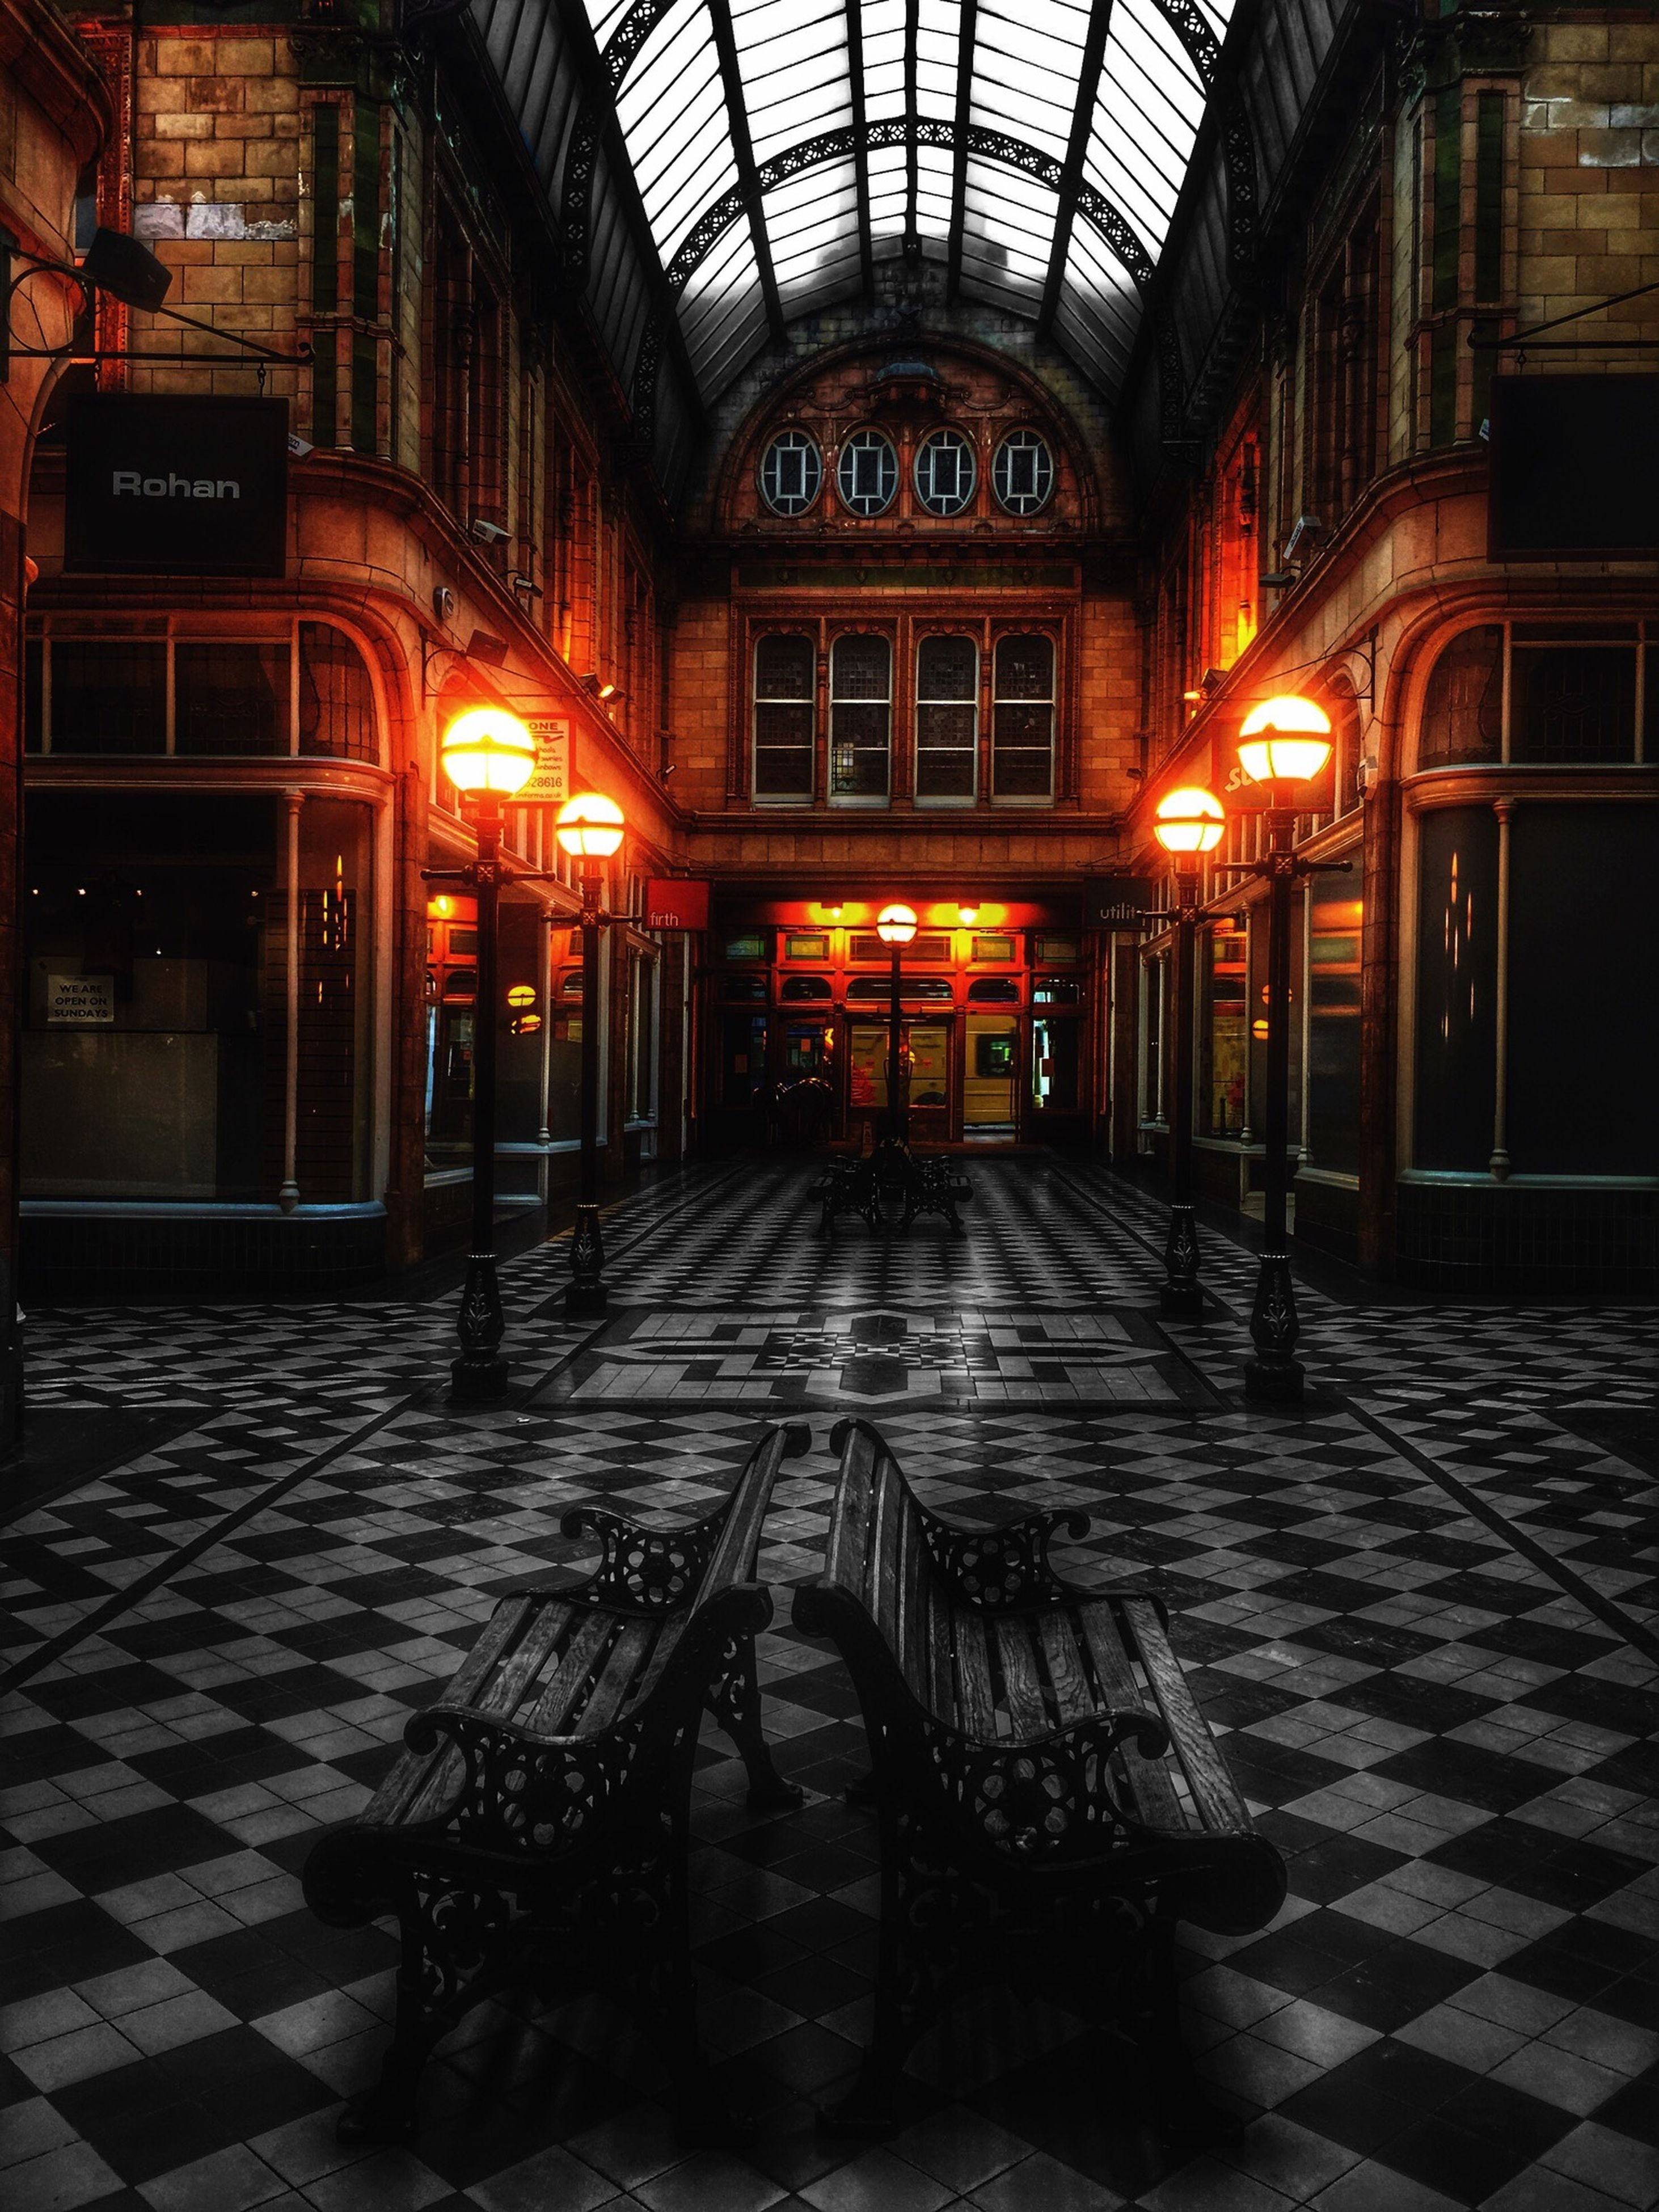 architecture, built structure, illuminated, building exterior, empty, night, the way forward, cobblestone, absence, building, indoors, lighting equipment, no people, arch, door, flooring, diminishing perspective, city, walkway, window